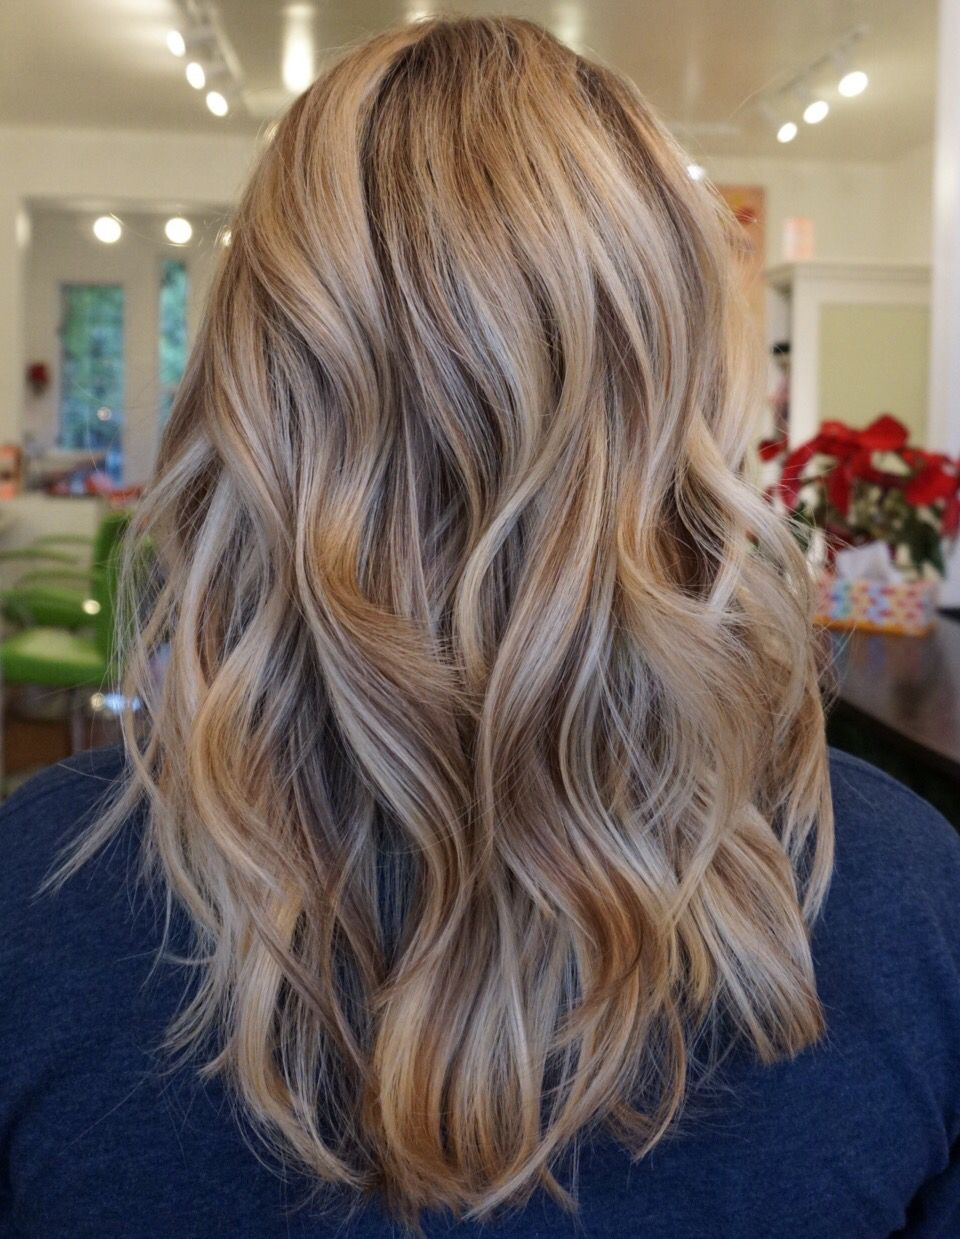 30 Luscious Daily Long Hairstyles 2020